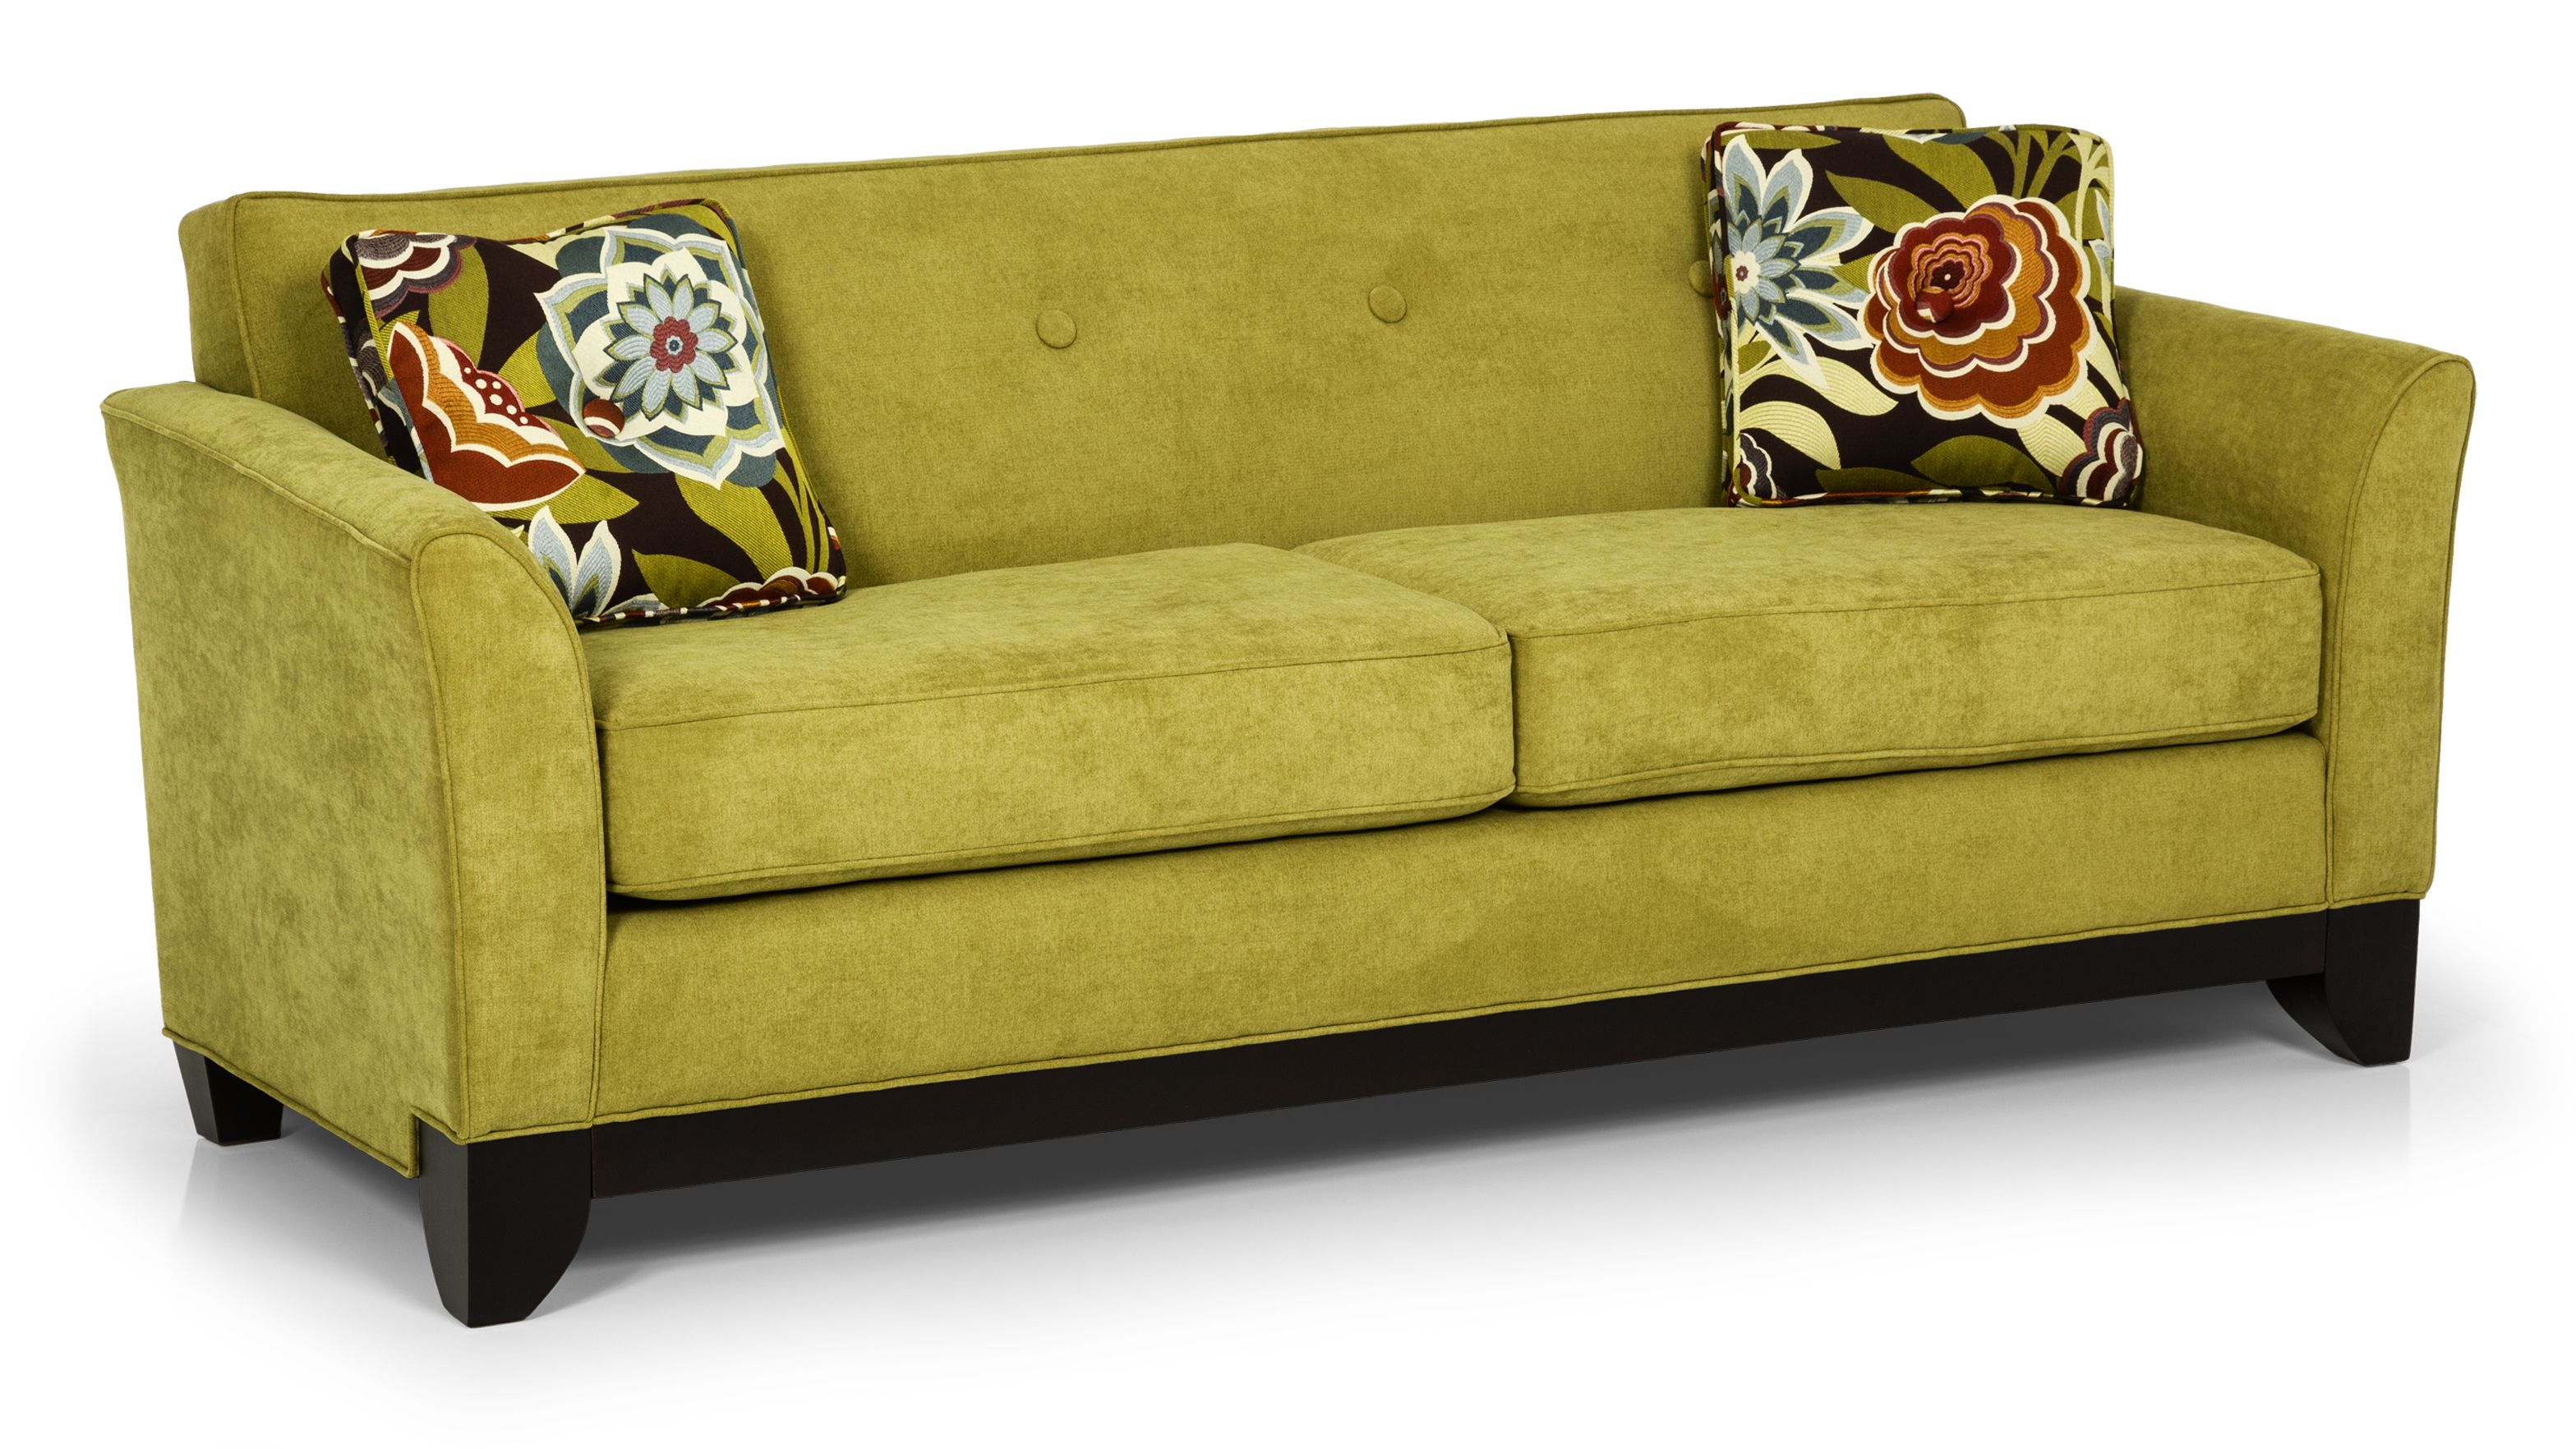 Wel e to Stanton Sofas cachet macaw I love this color